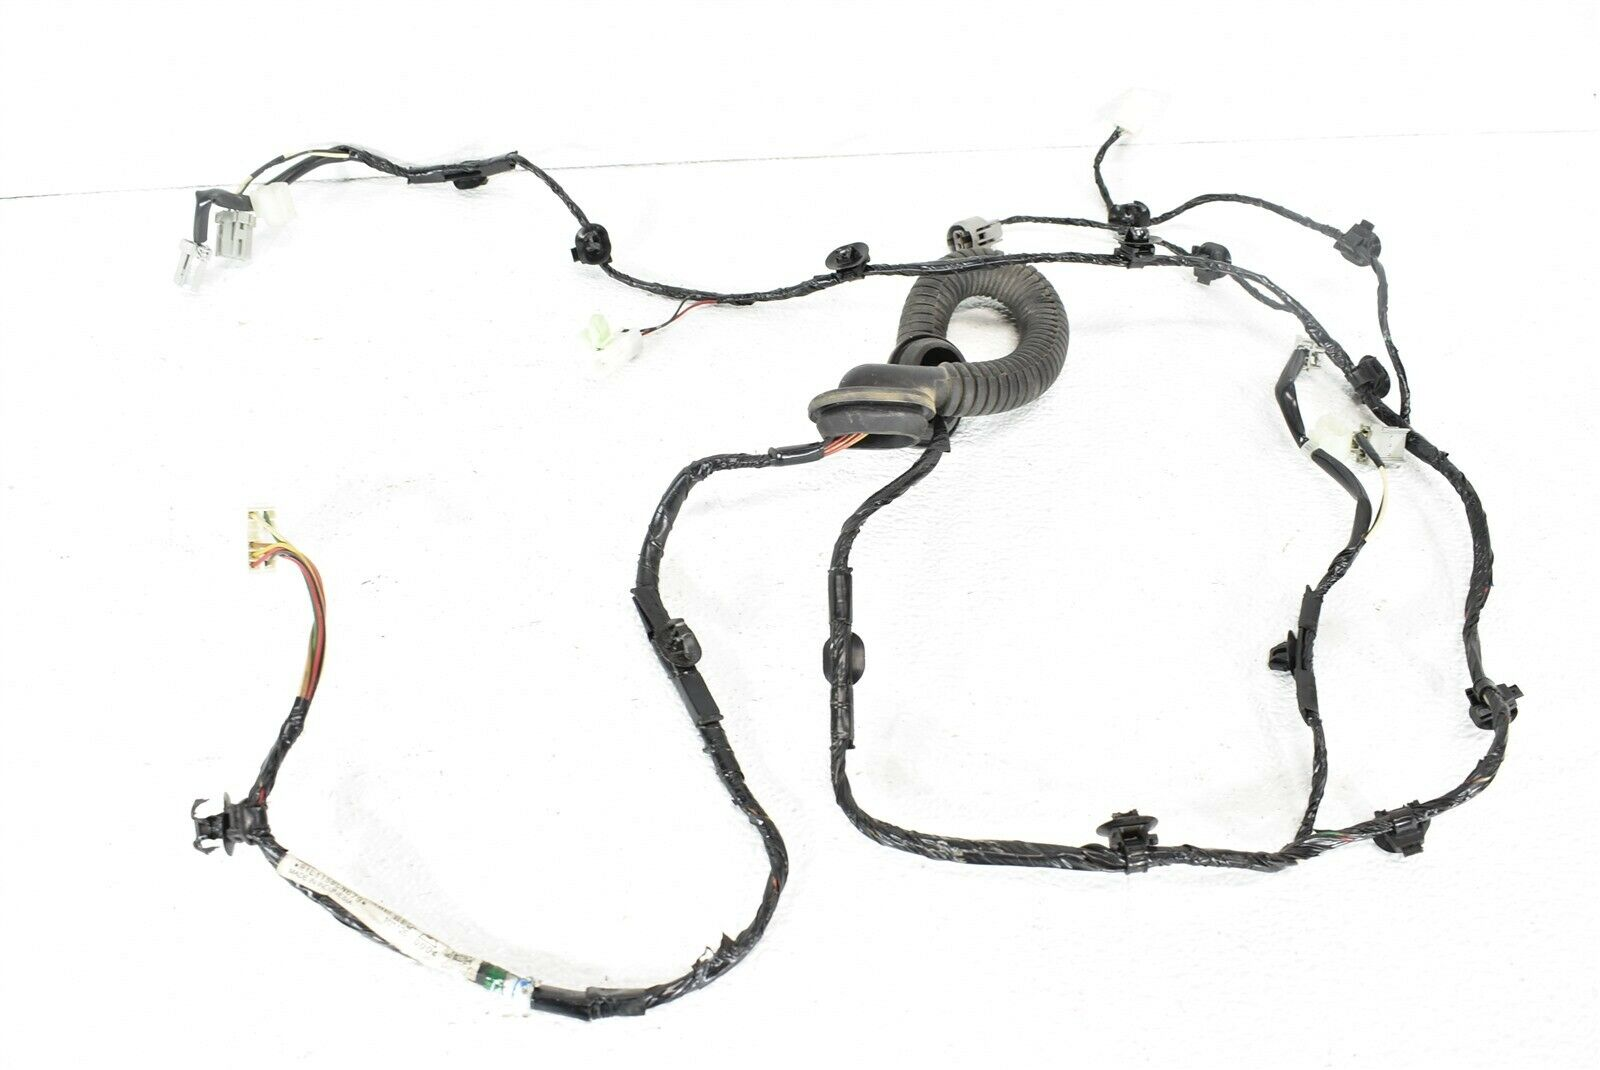 2008-2015 Mitsubishi Evolution X Trunk Wiring Harness